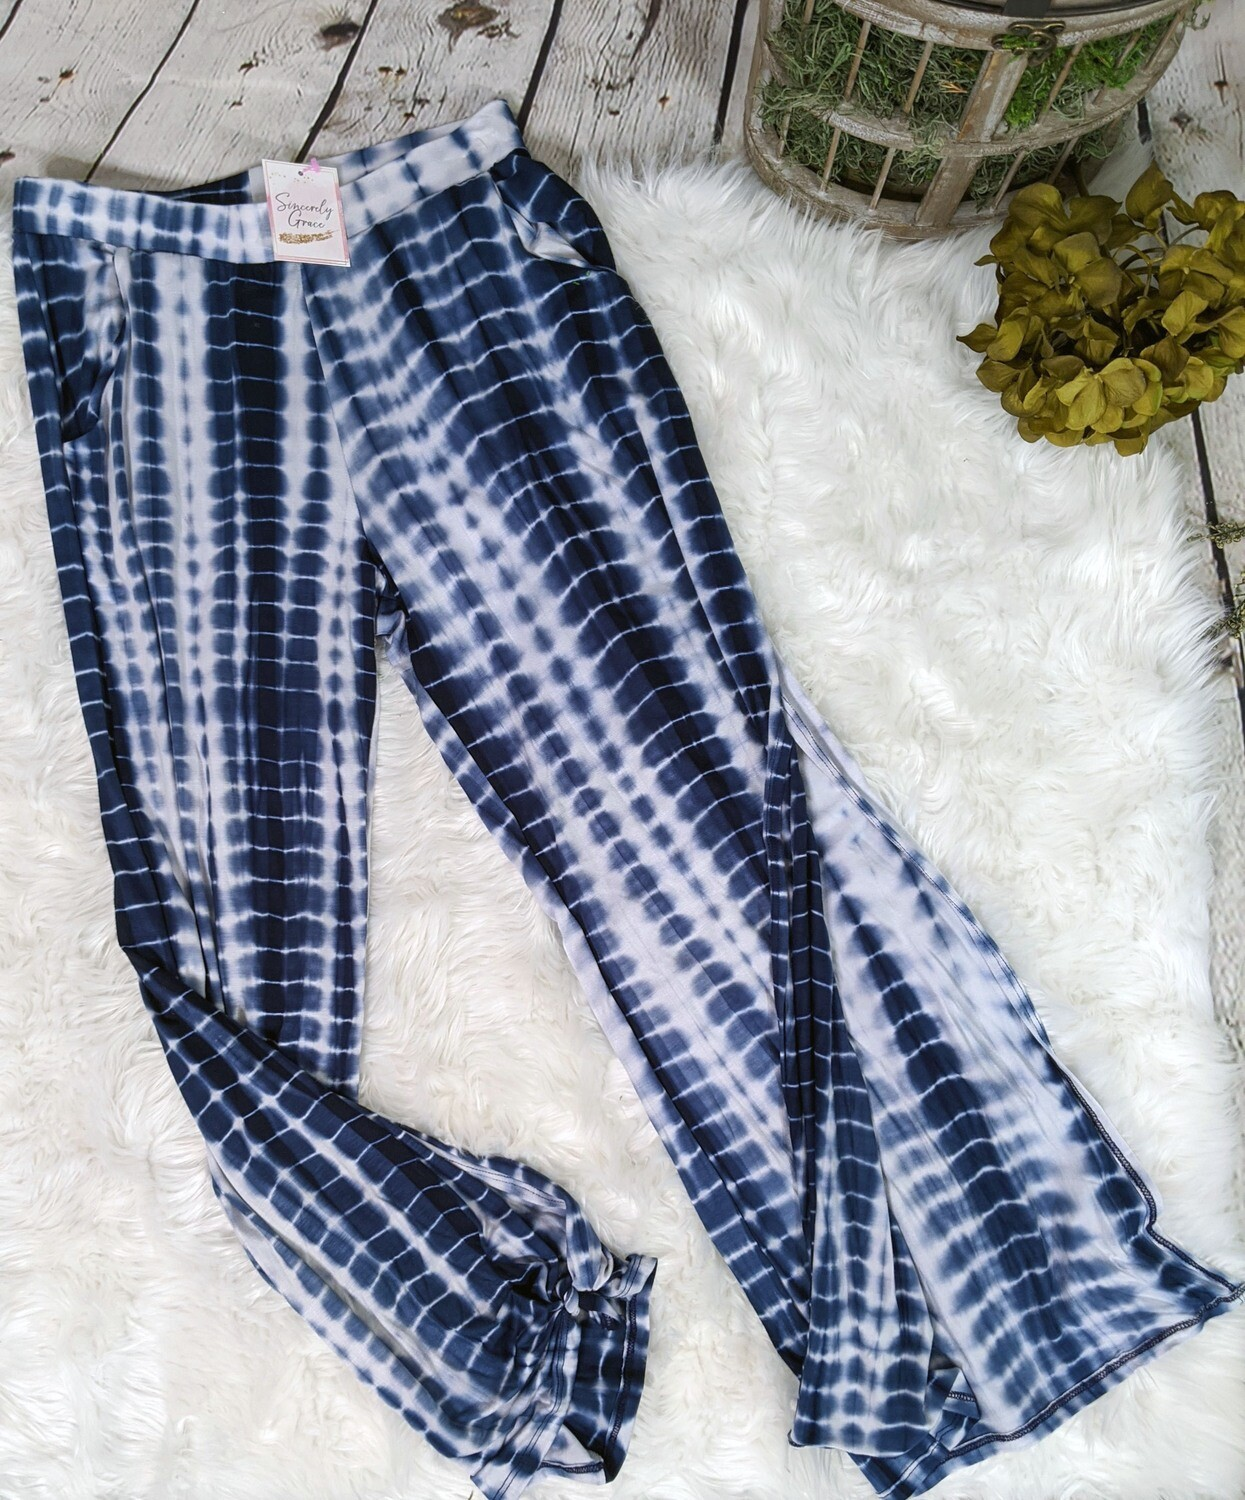 Naddy Pant